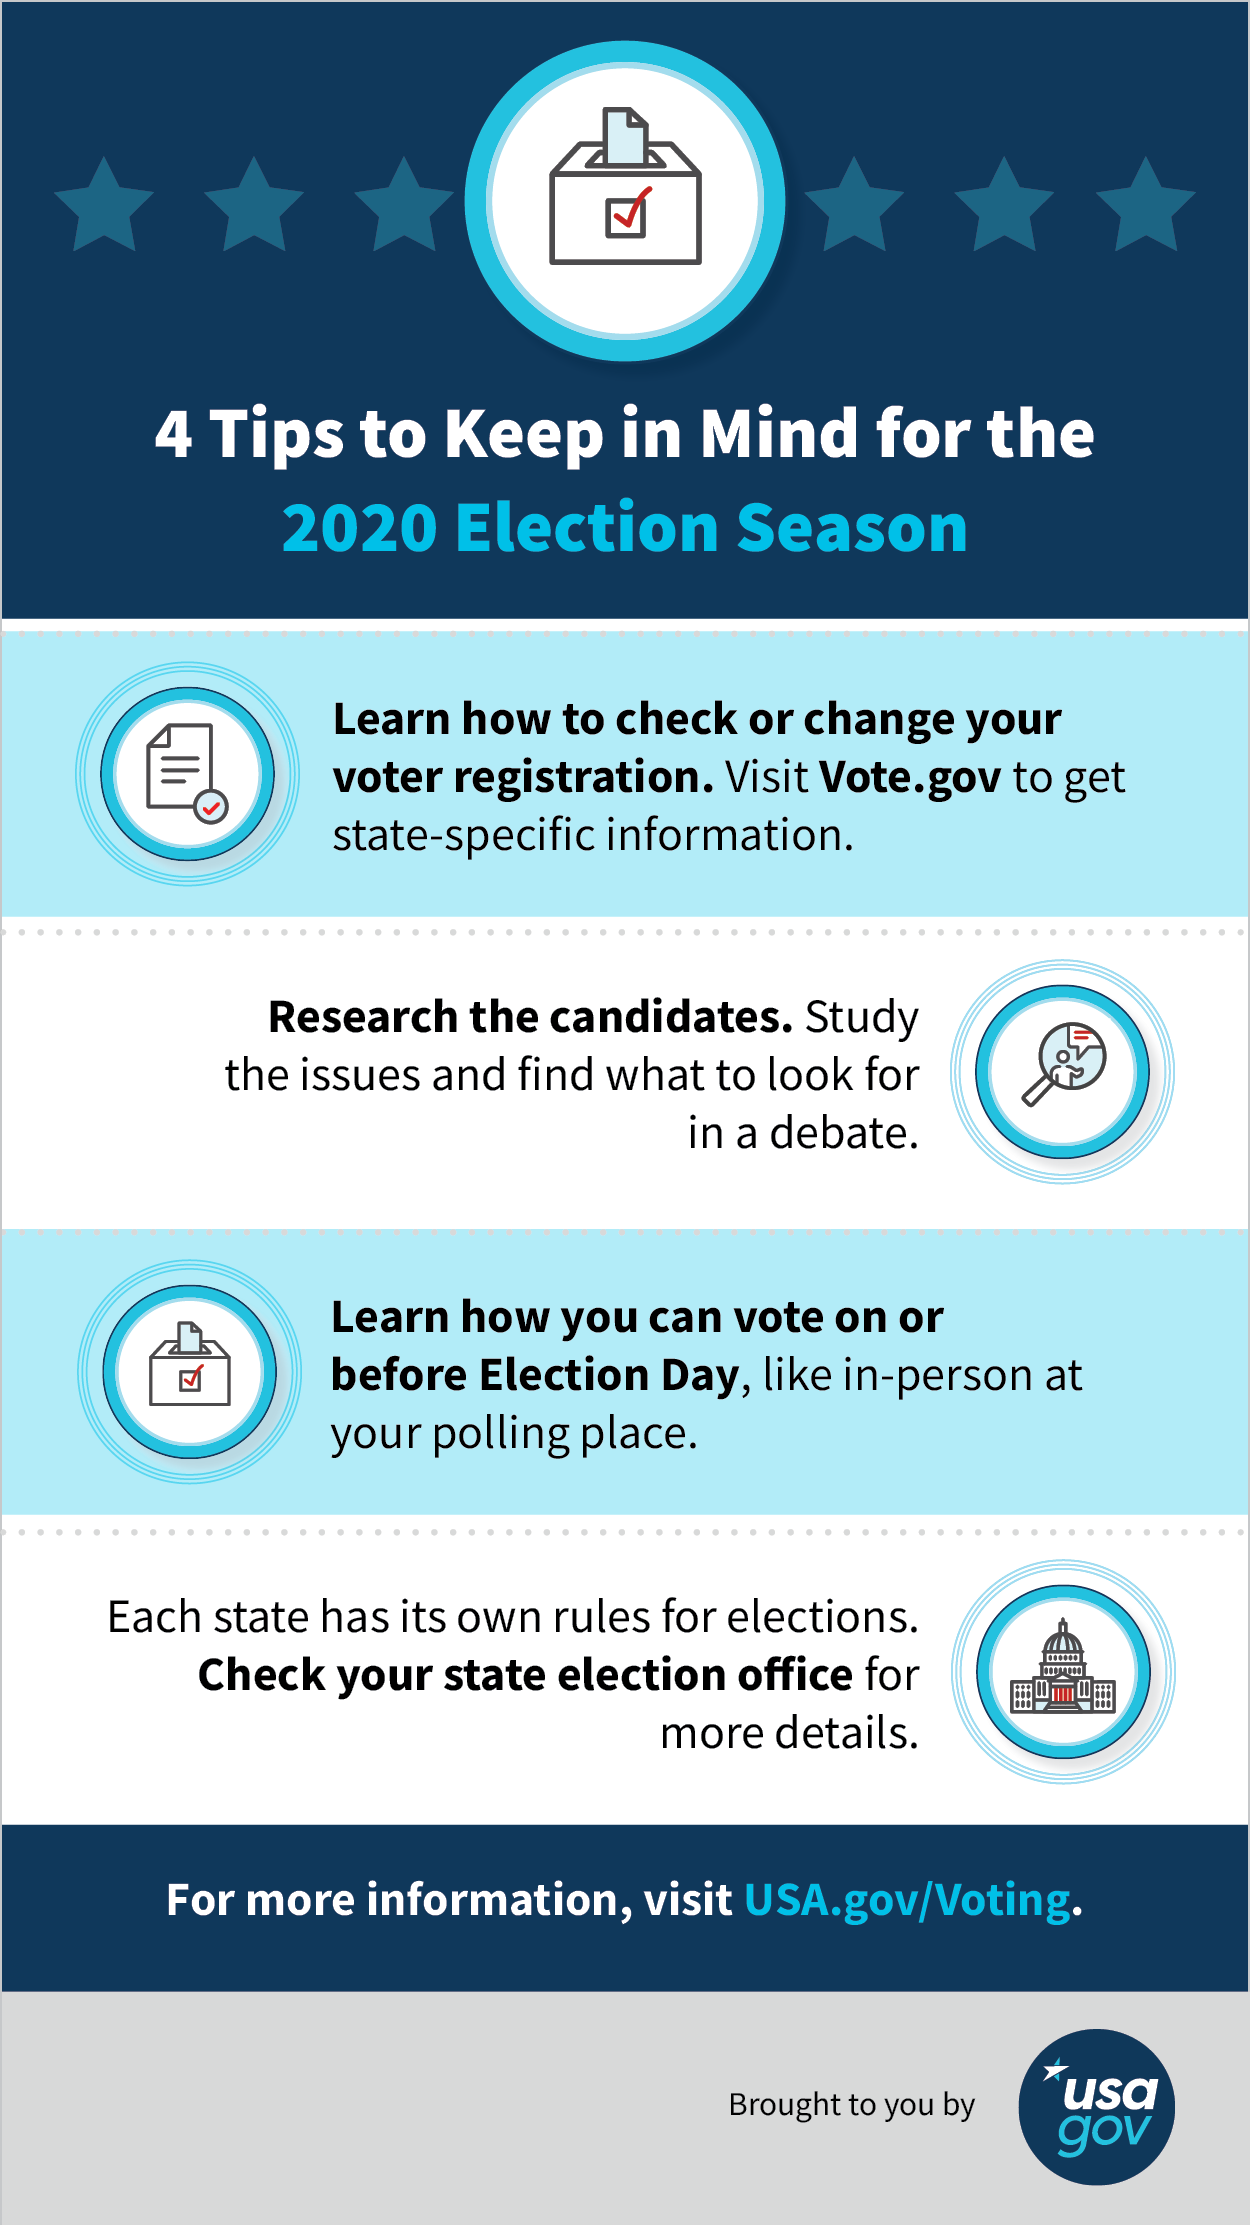 USAGov's Quick Guide to Voting in 2020